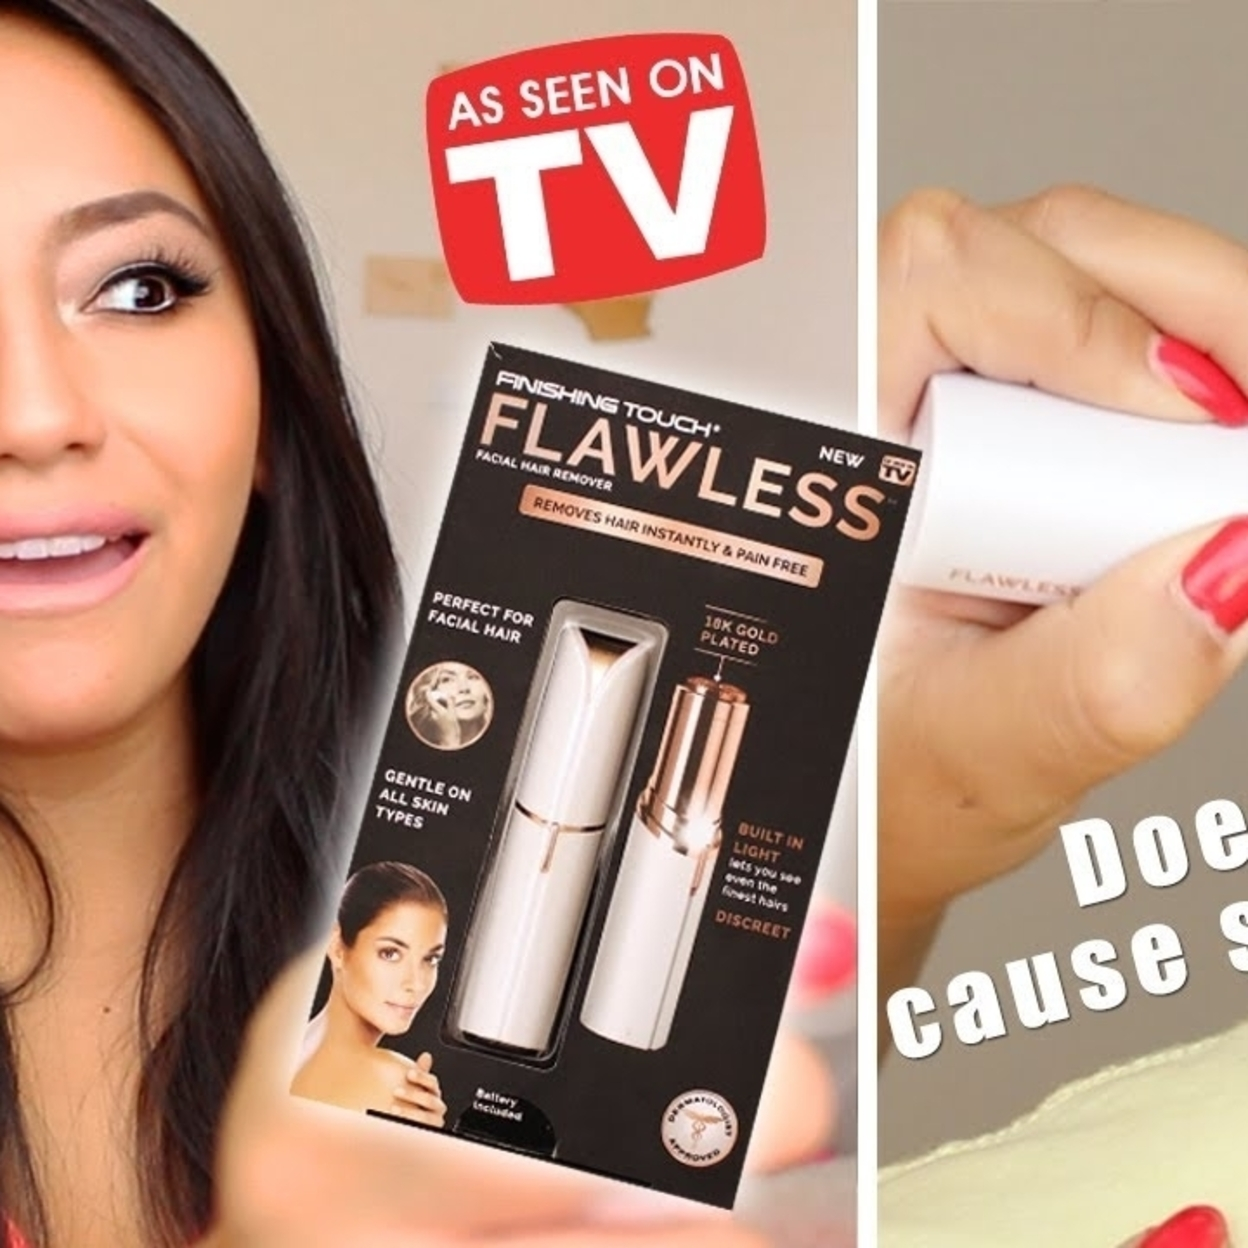 Finishing Touch Flawless Women Painless Hair Remover Face Facial Hair Remover 5a1b18f178280079b72825d6